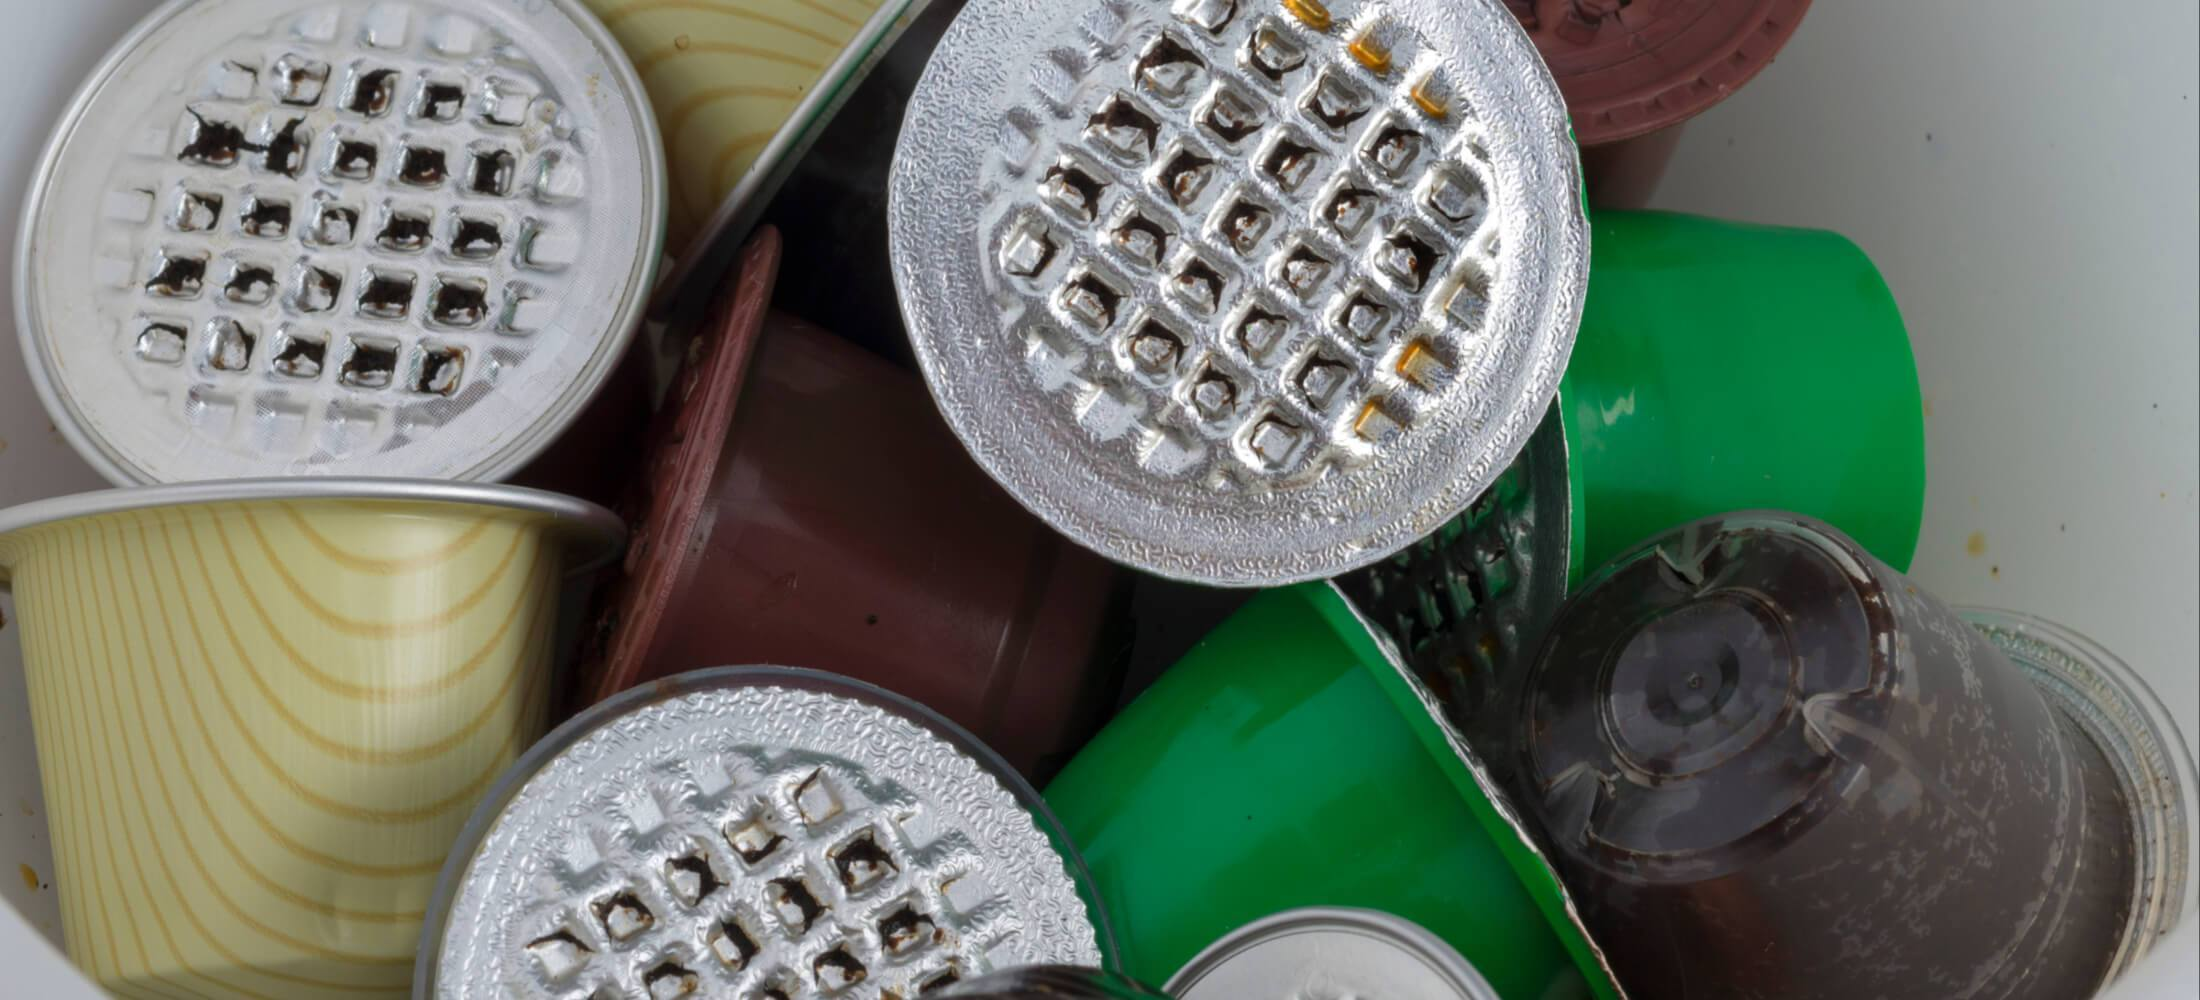 How To Recycle Your K-Cup Pods And Other Capsules